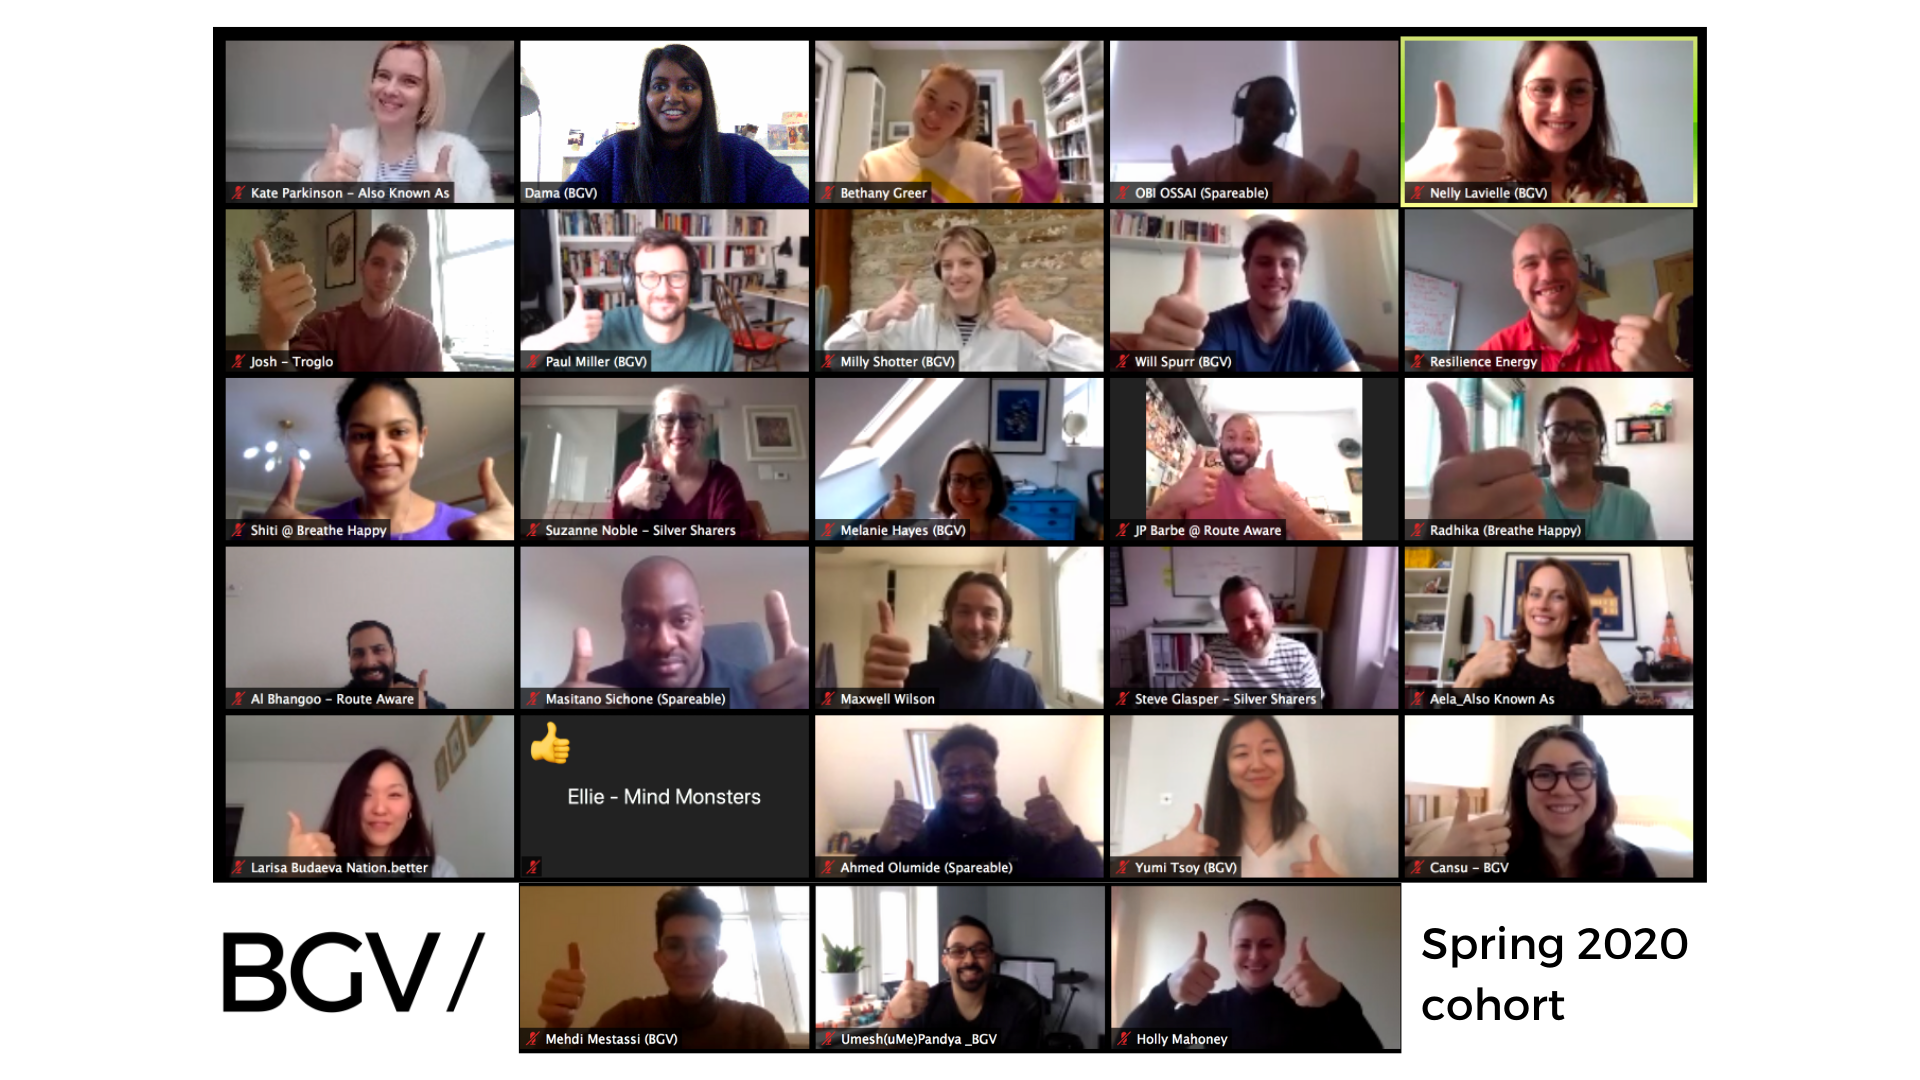 The Spring 2020 teams and BGV Team on their first programme call